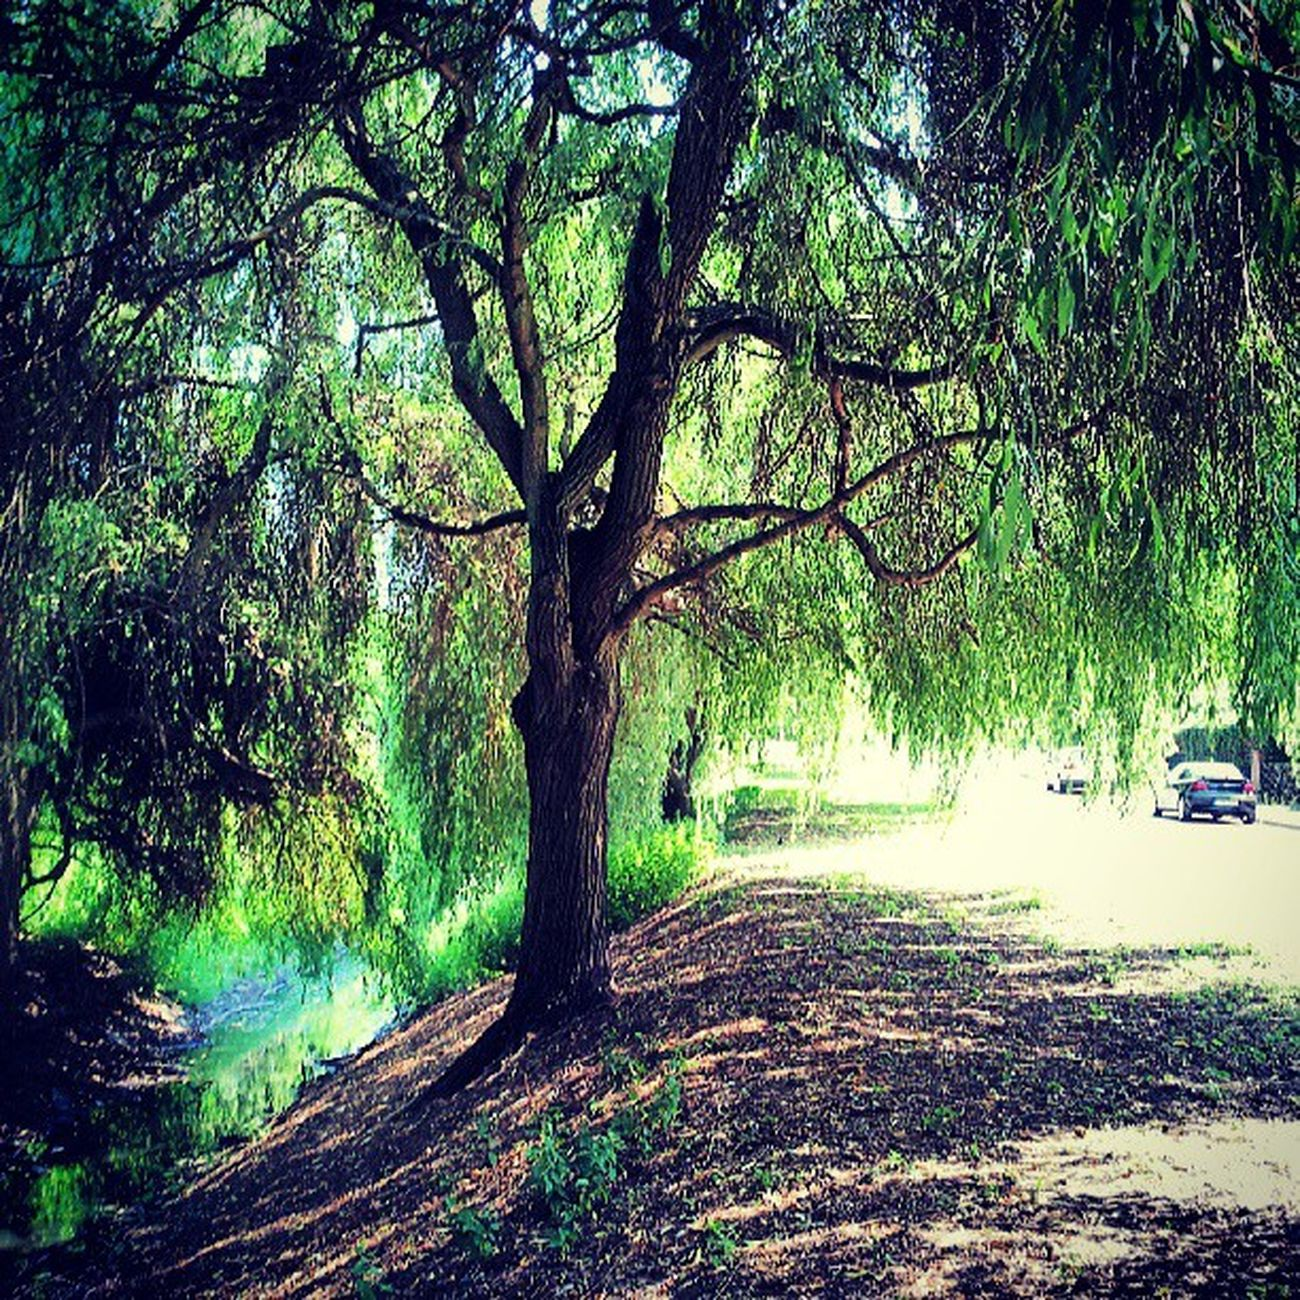 Gras  Green Tree Branches Leaves Nature Sand Street Water Fliess Berlin River Hang Car Summer Warm July Sunlight Happy Mood Instatags